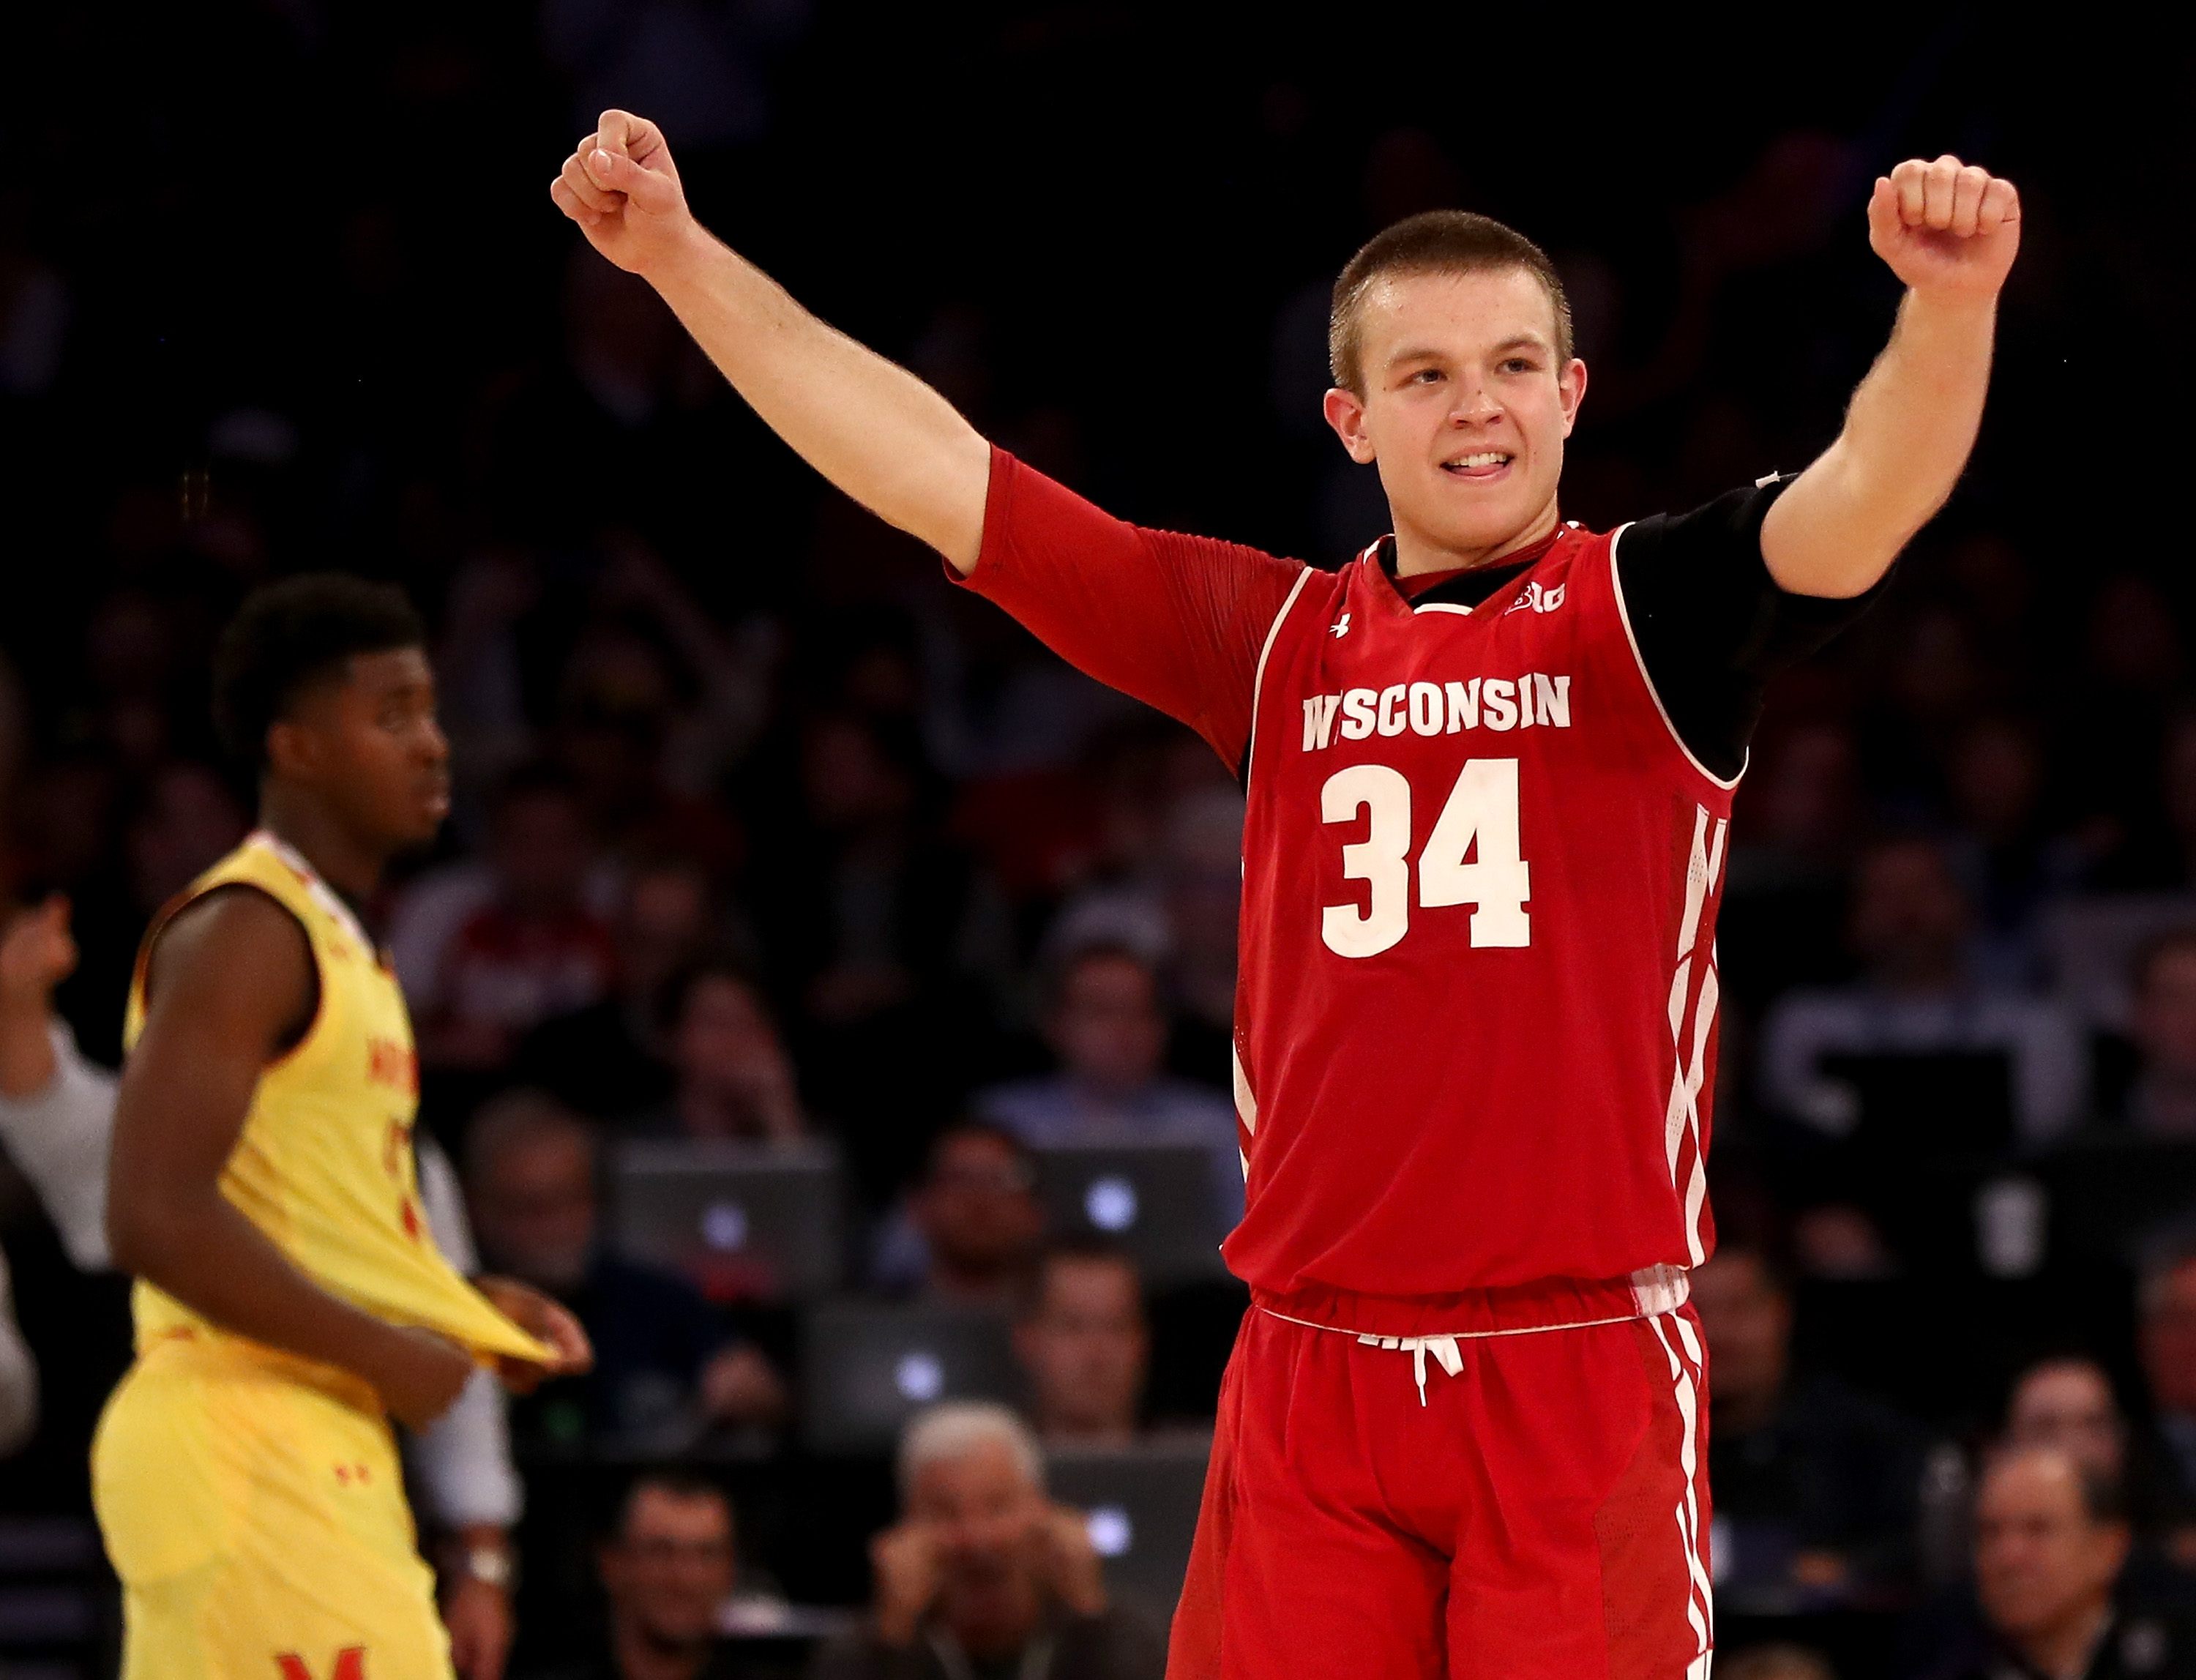 Buckys 5th Podcast Ep 60 Wisconsin basketball recap Big Ten tournament preview A former Badgers standout joins us to chat about what lies ahead for UW!